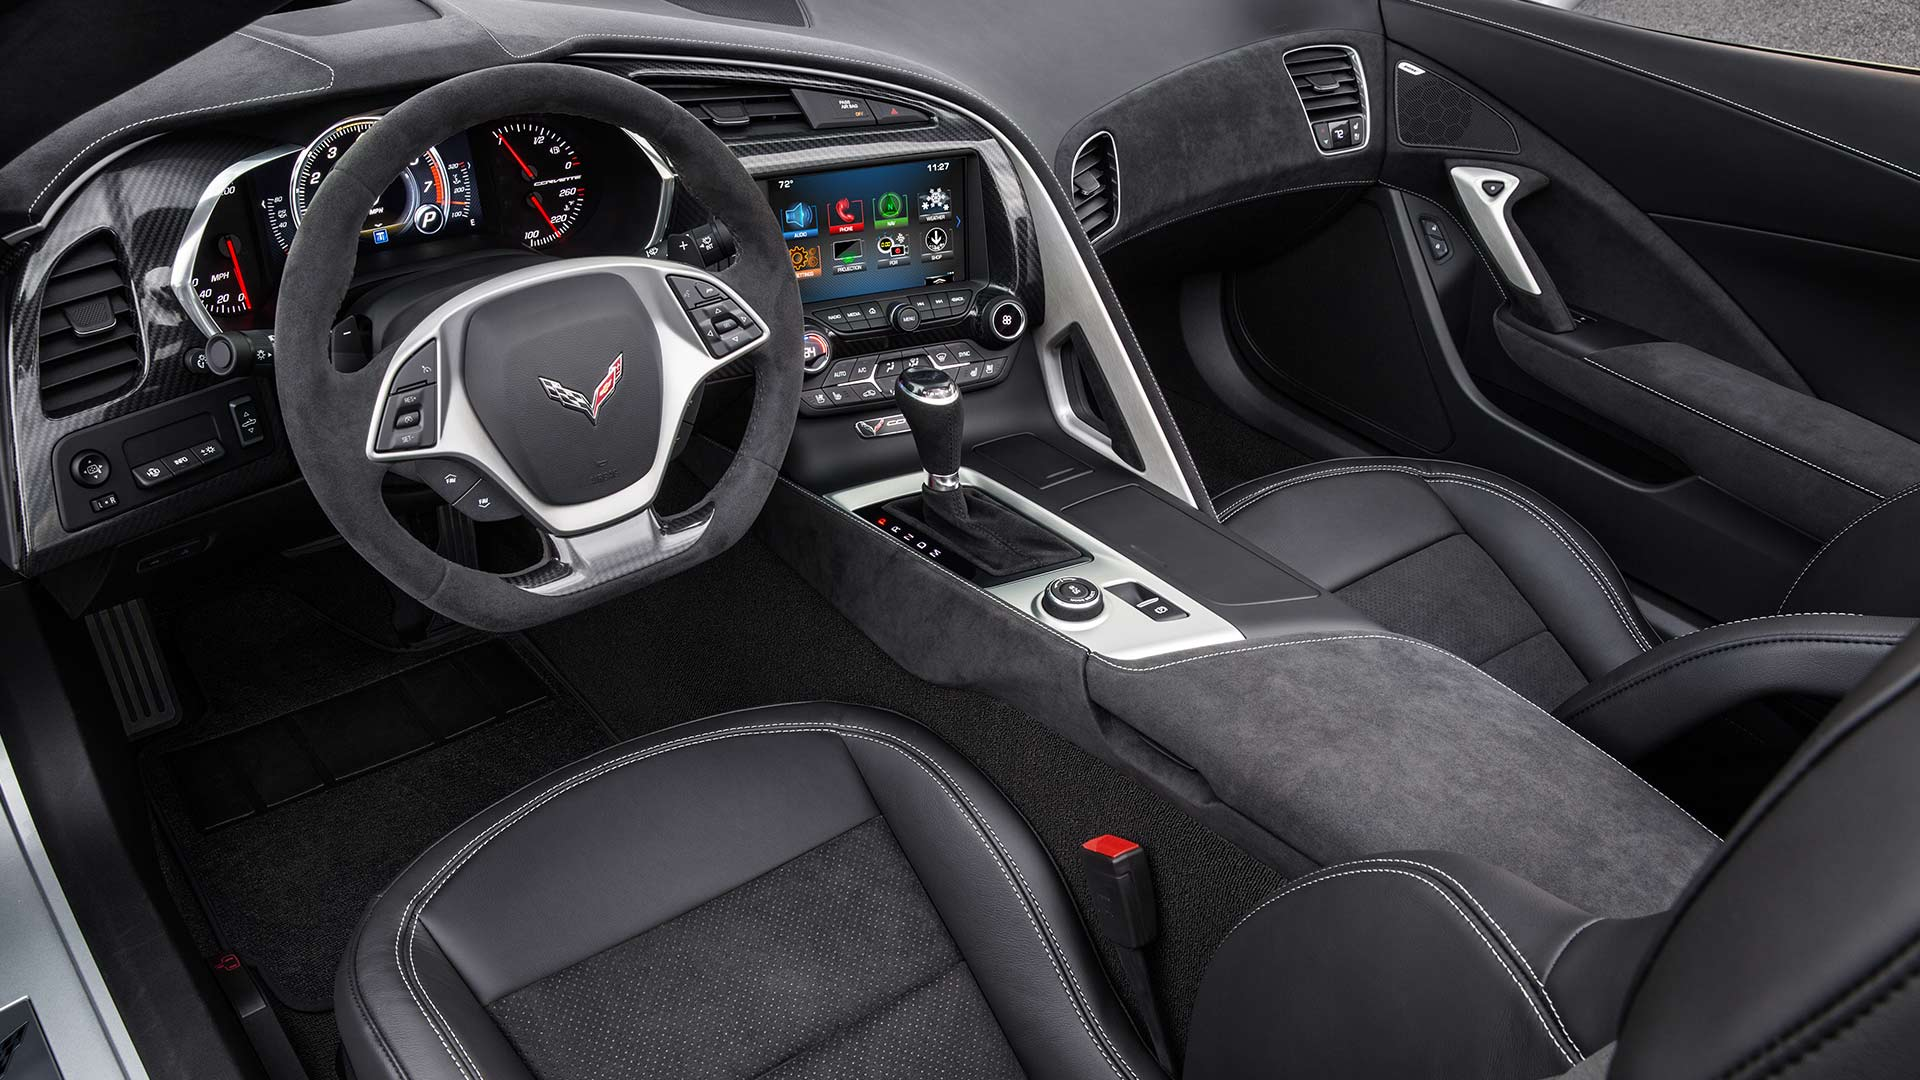 2017 Chevrolet Corvette Stingray Interior